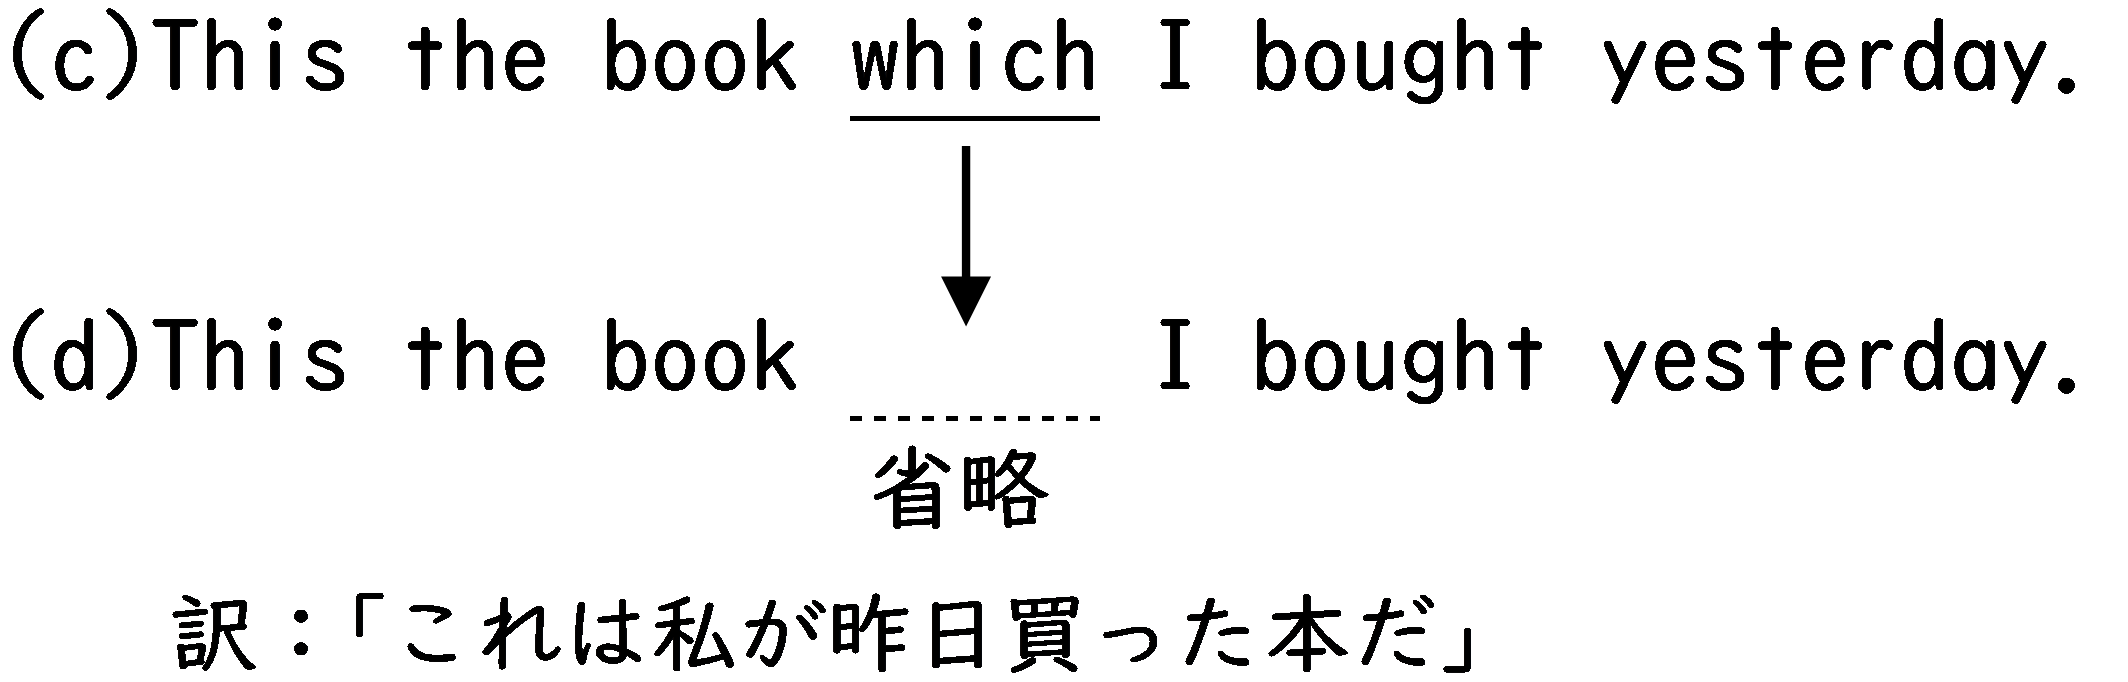 whichの省略